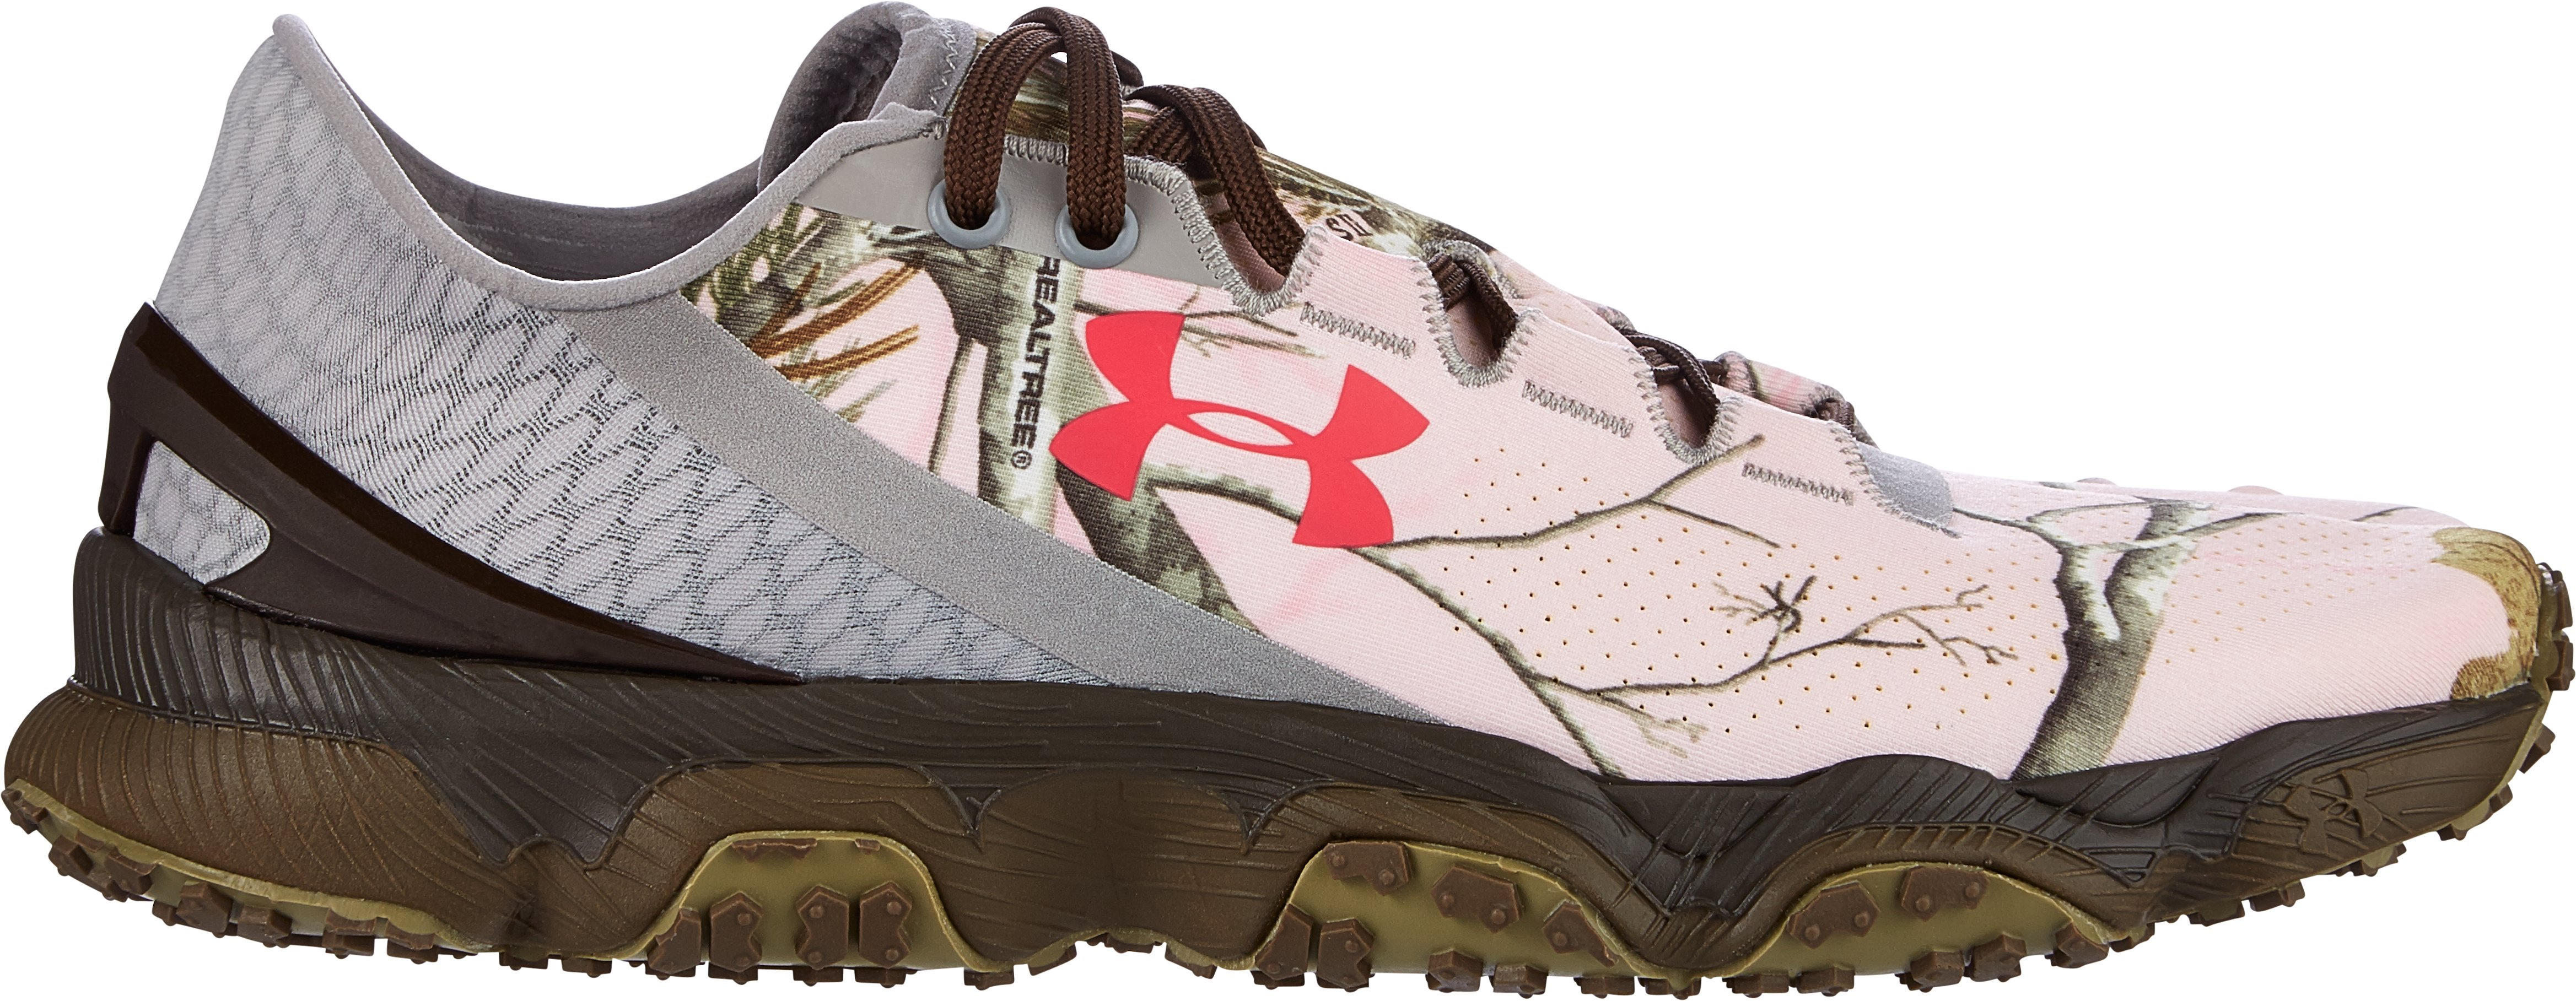 Women's UA SpeedForm® XC Camo Trail Running Shoes, Realtree Ap Pink, zoomed image